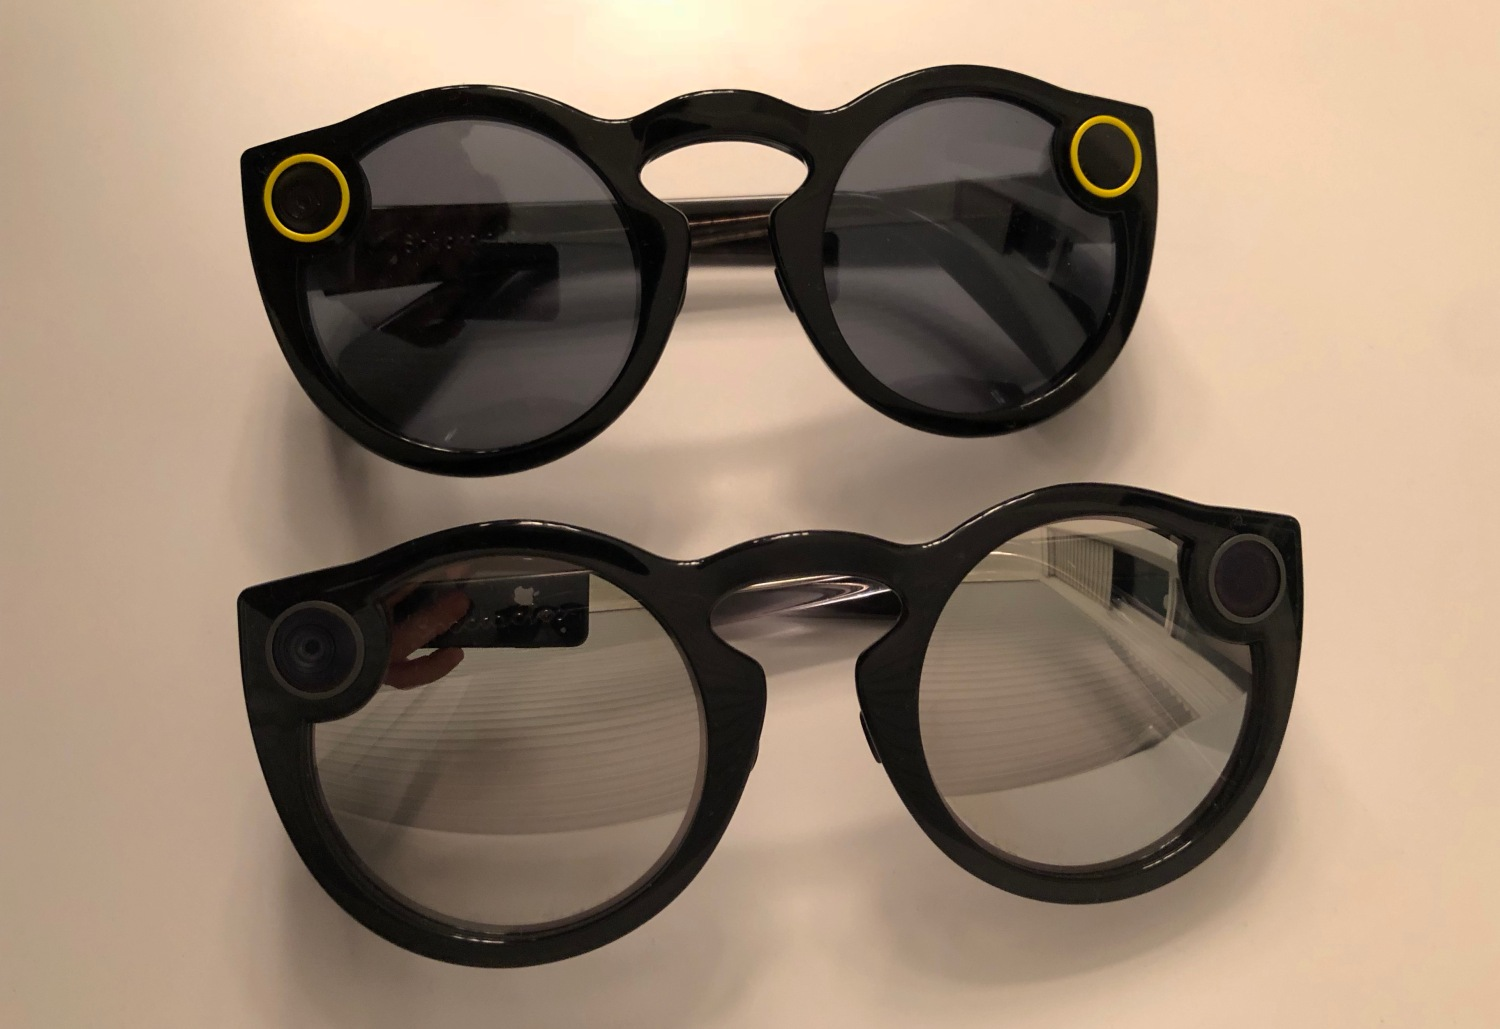 fdbf2b56380 Snaapchat Spectacles Front View V1 vs V2